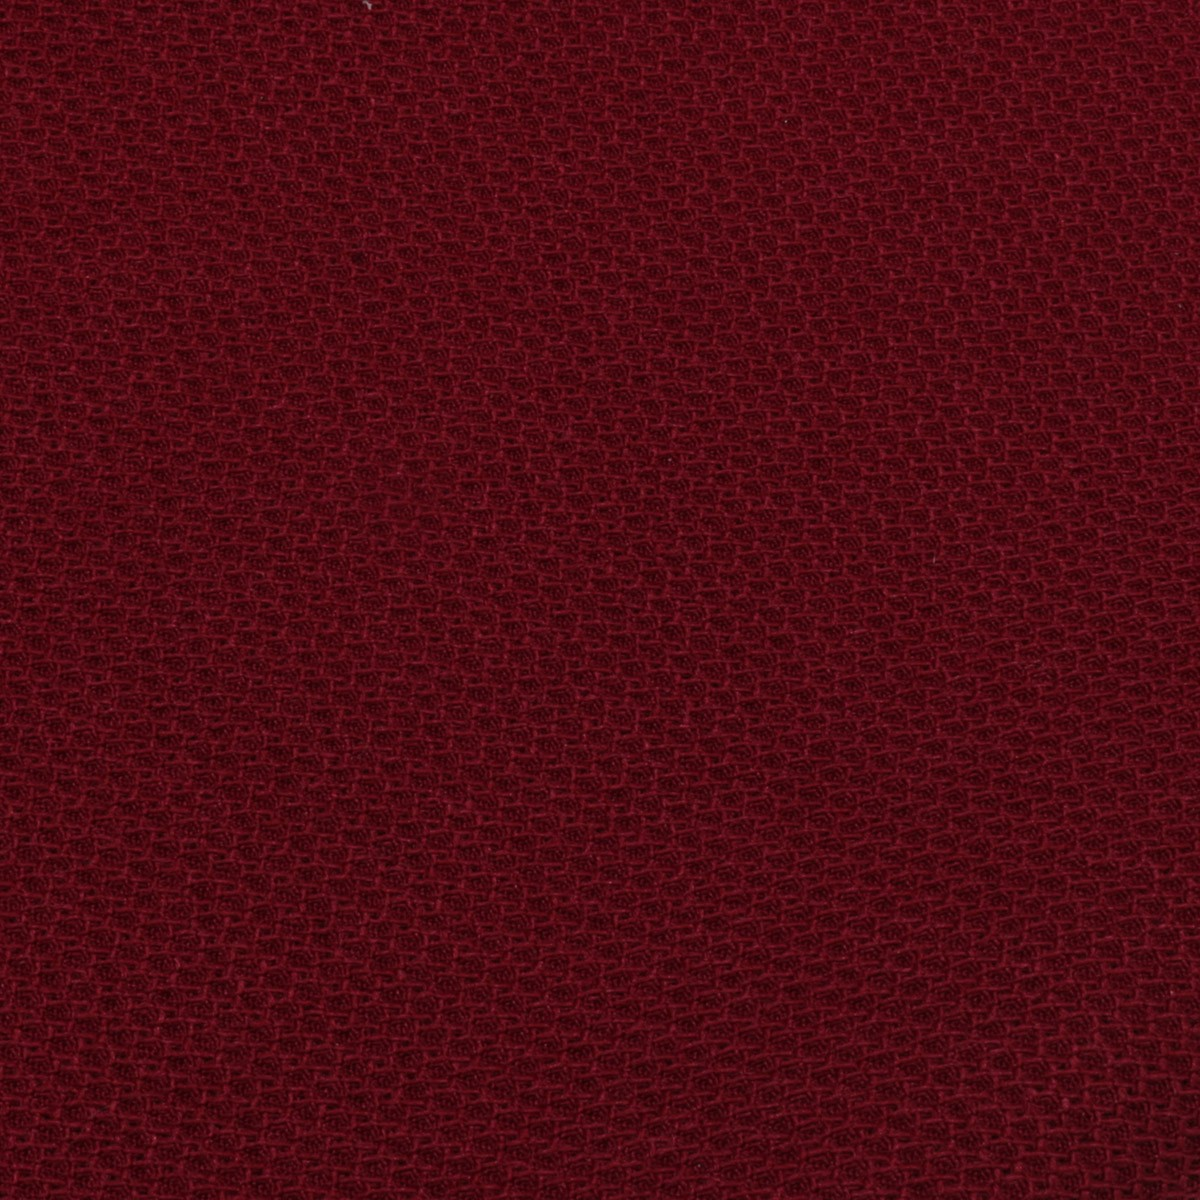 Acoustic Fabric for Loudspeakers Grill 150x100cm Dark Red (RAL 3032)